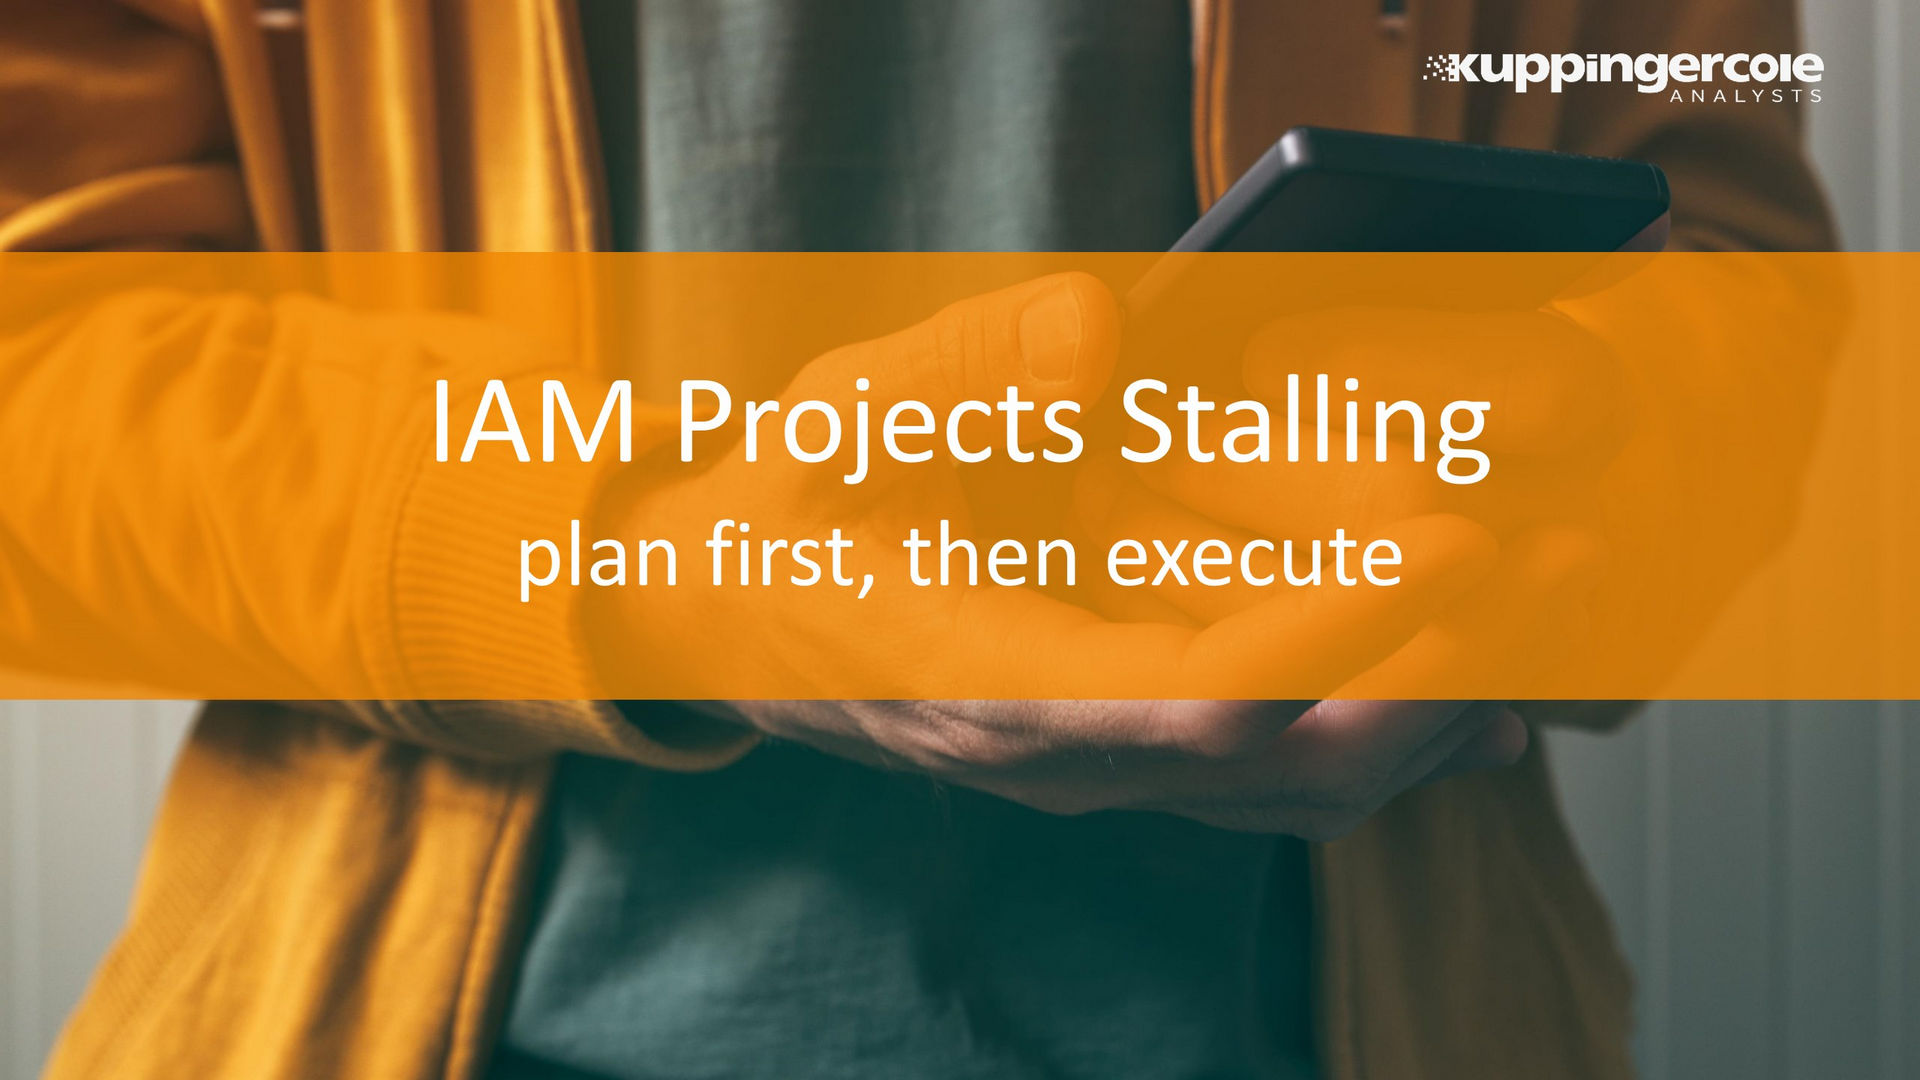 IAM Projects stalling - Plan First, Then Execute